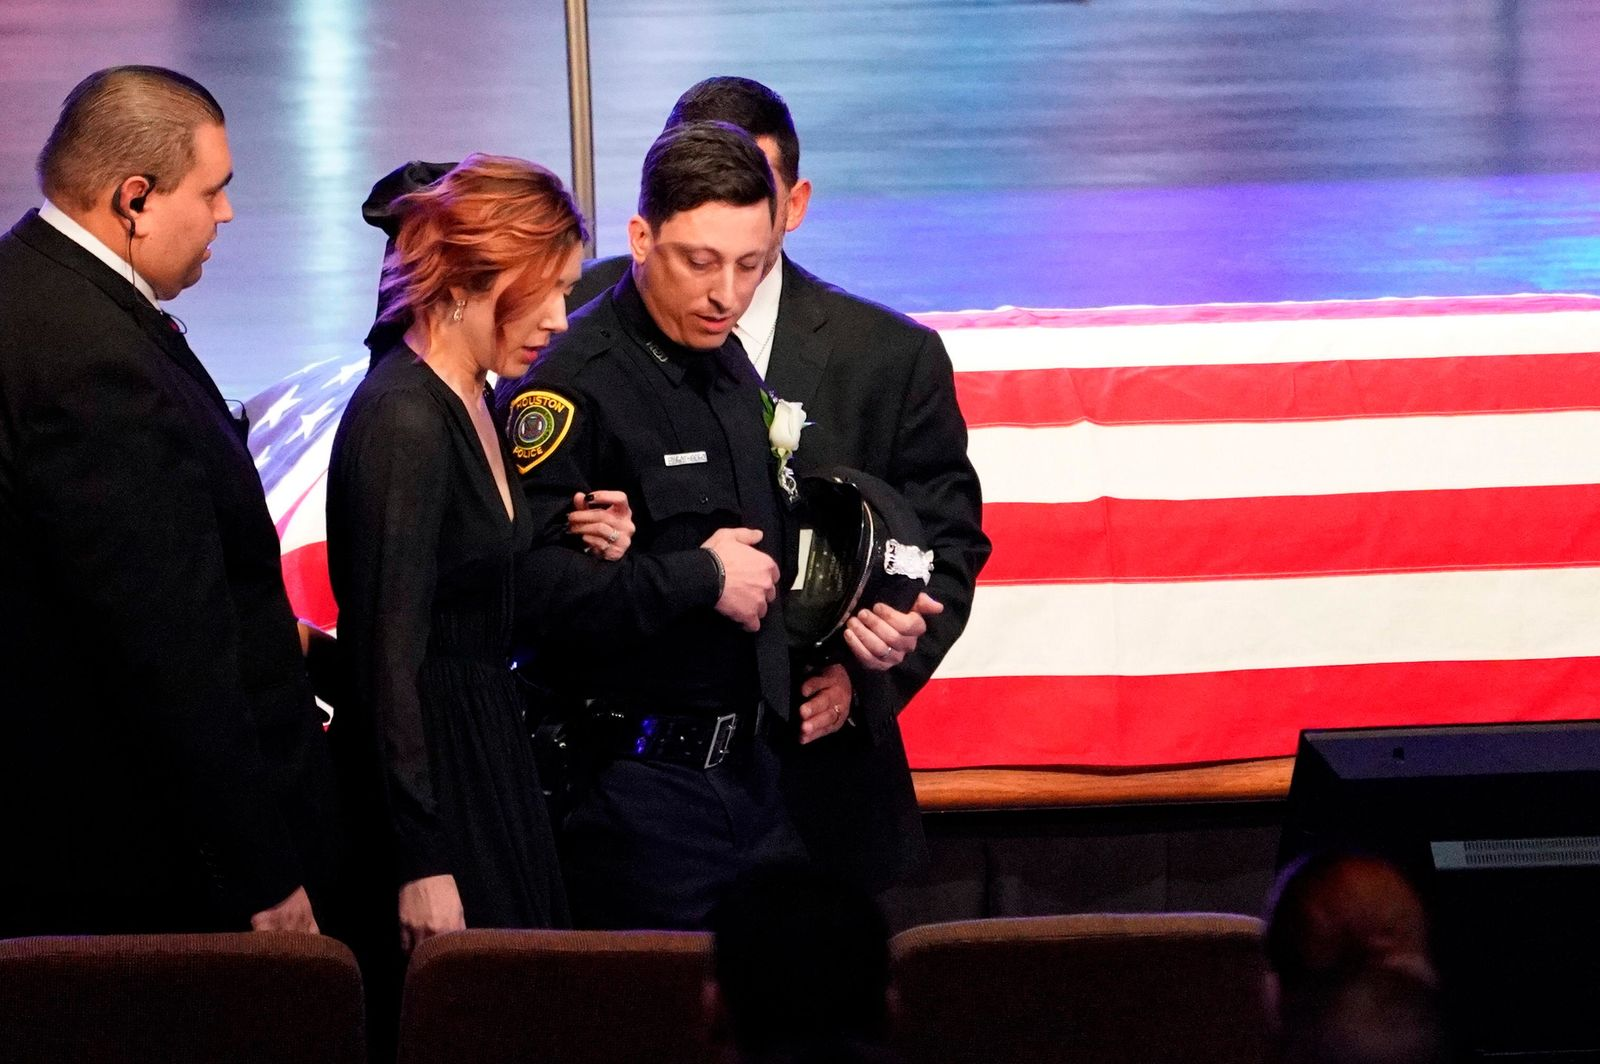 Widow Bethany Elise Brewster is escorted into the church sanctuary for the funeral of her husband, Houston Police Sgt. Christopher Brewster, Thursday, Dec. 12, 2019, at Grace Church Houston in Houston. Brewster, 32, was gunned down Saturday evening, Dec. 7, while responding to a domestic violence call in Magnolia Park. Police arrested 25-year-old Arturo Solis that night in the shooting death. Solis faces capital murder charges. (Melissa Phillip/Houston Chronicle via AP, Pool)